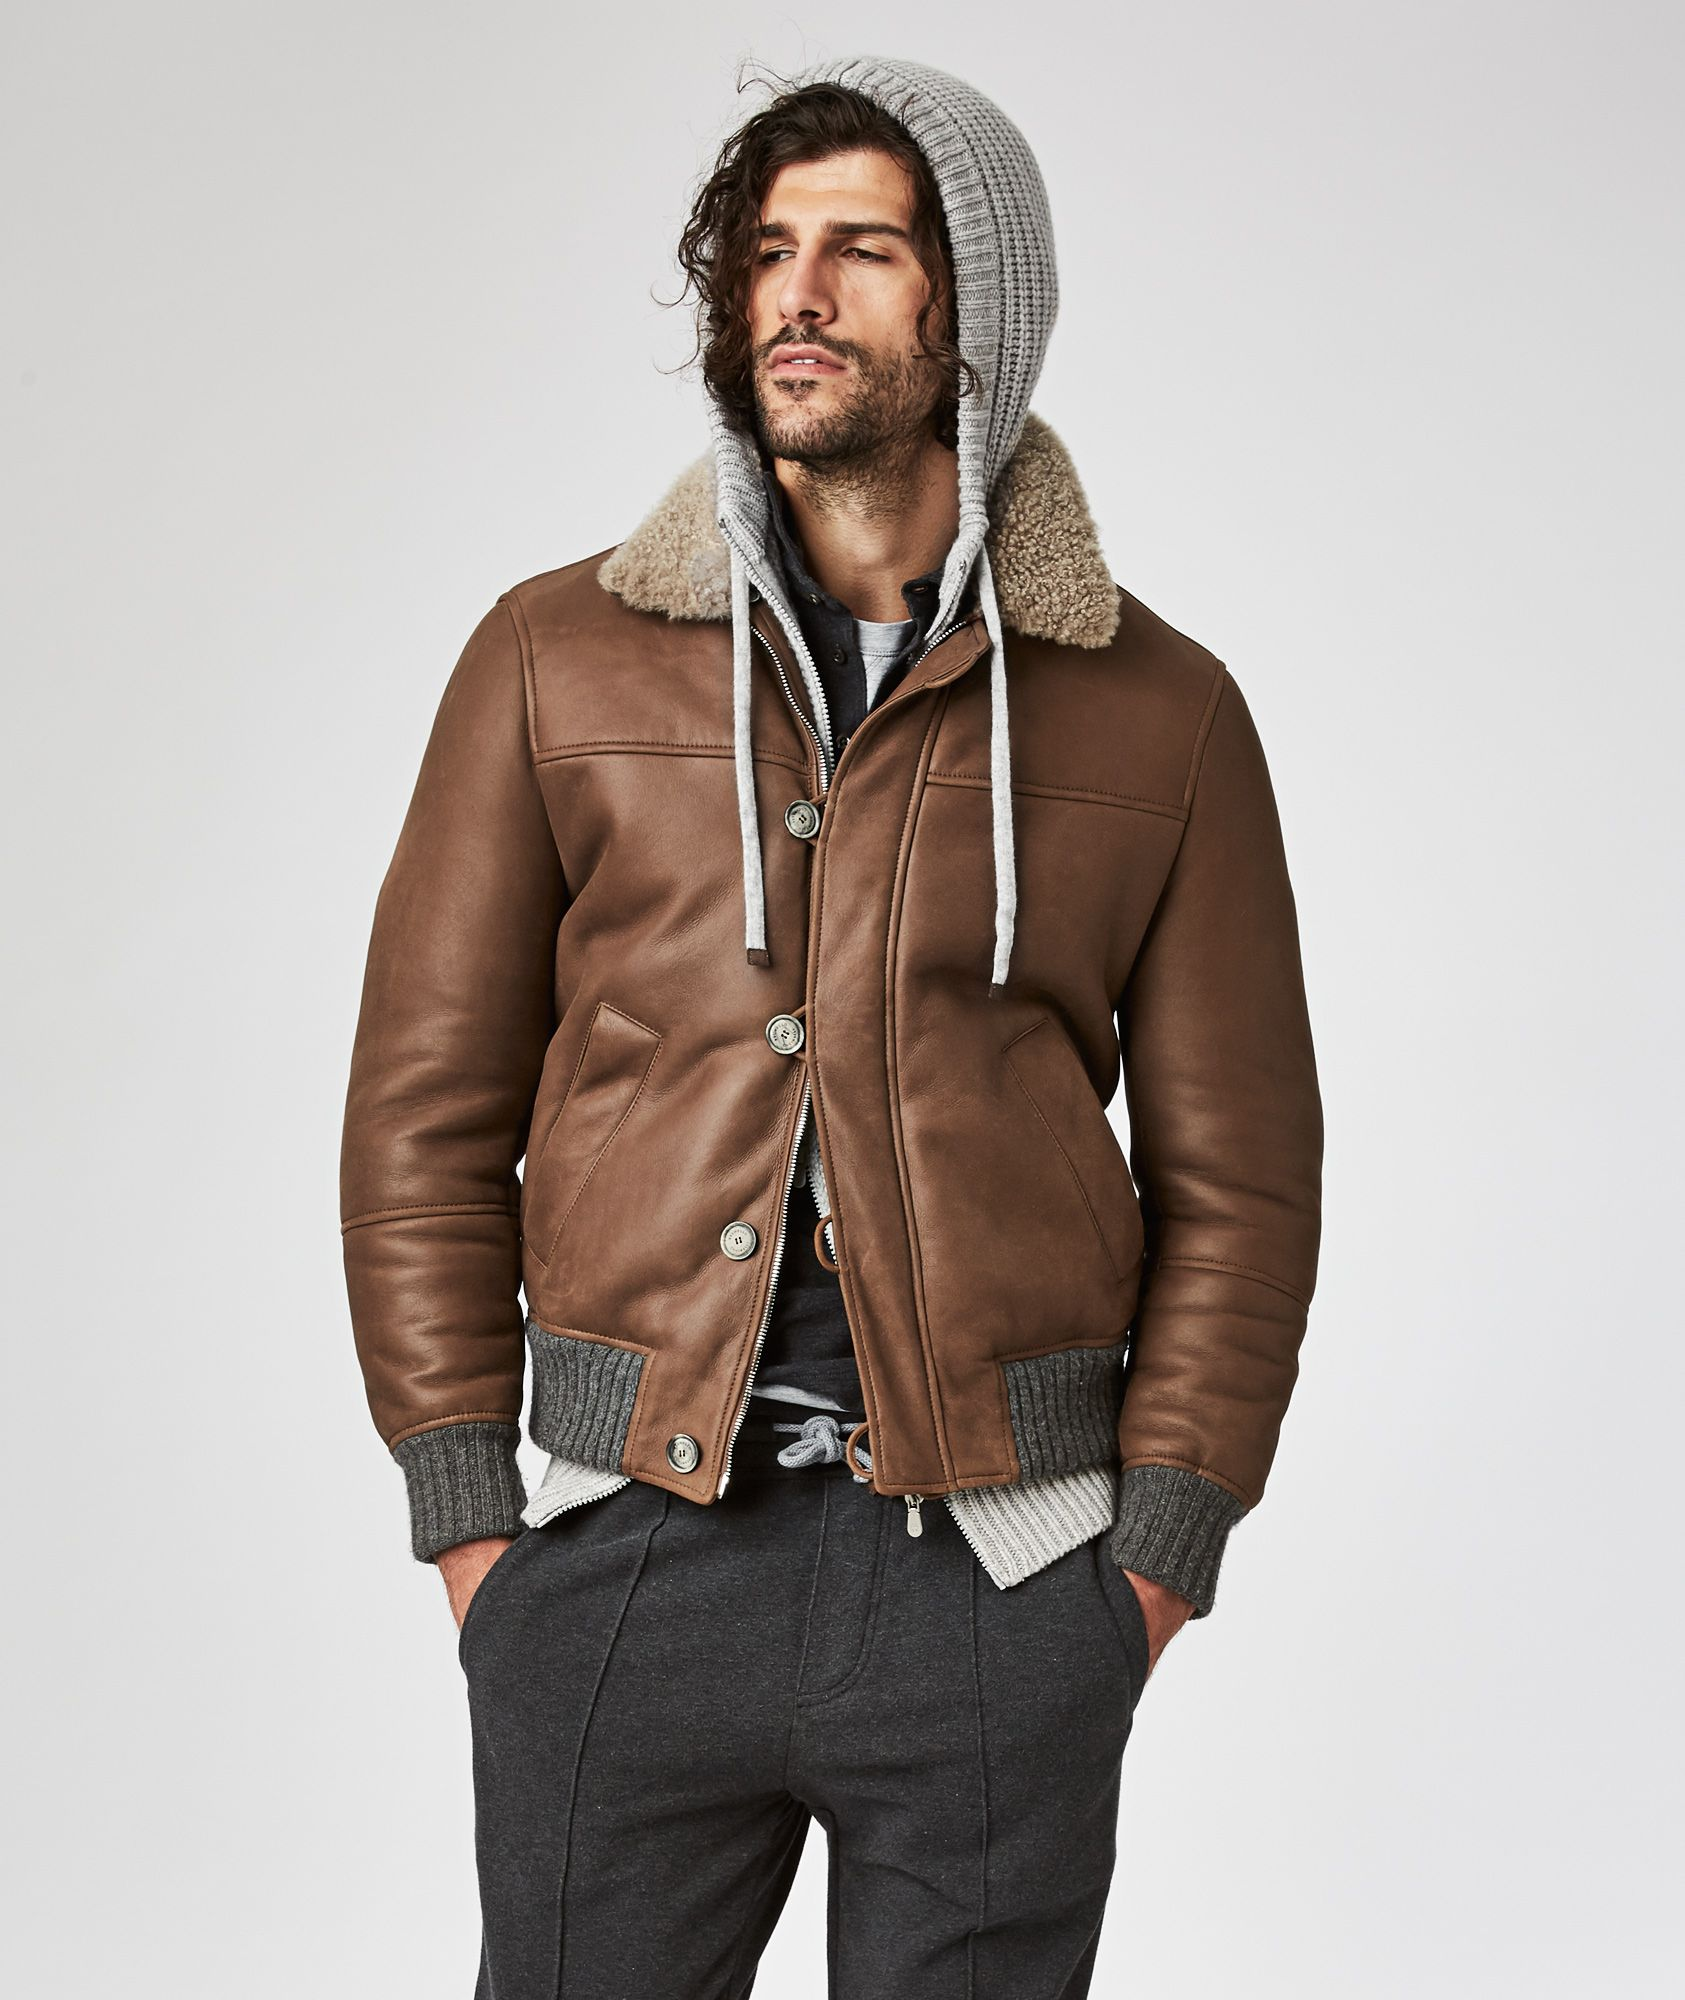 Brunello Cucinelli Shearling Trimmed Leather Jacket Leather Harry Rosen Leather Jacket Stylish Men Men S Leather Jacket [ 2000 x 1685 Pixel ]